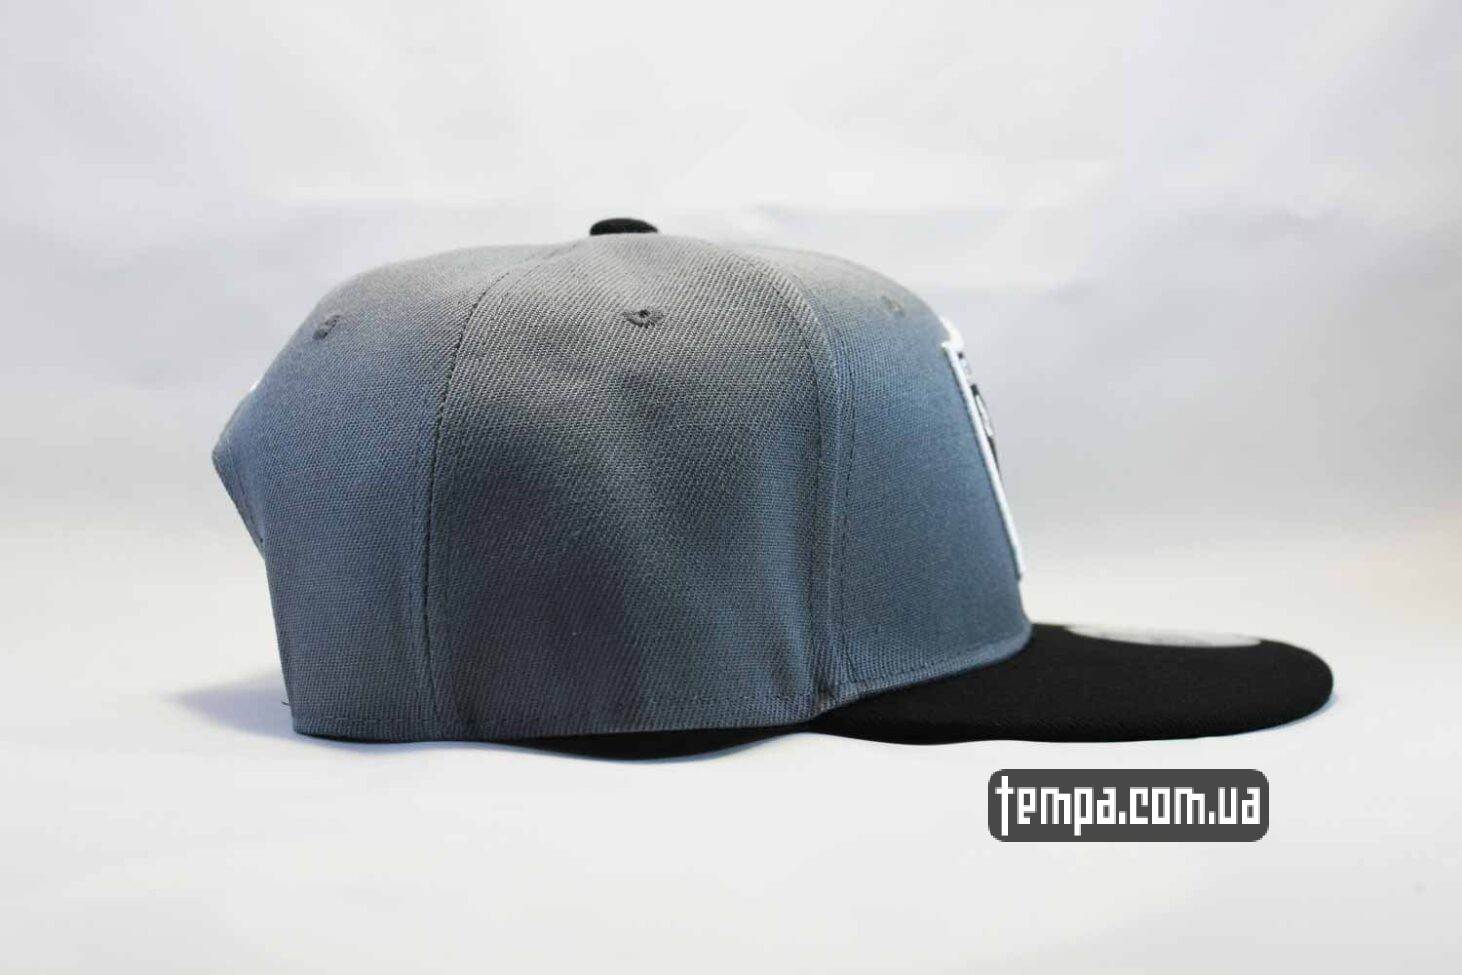 бейсболки реперки купить кепка snapback Raiders NewEra 9fifty серая